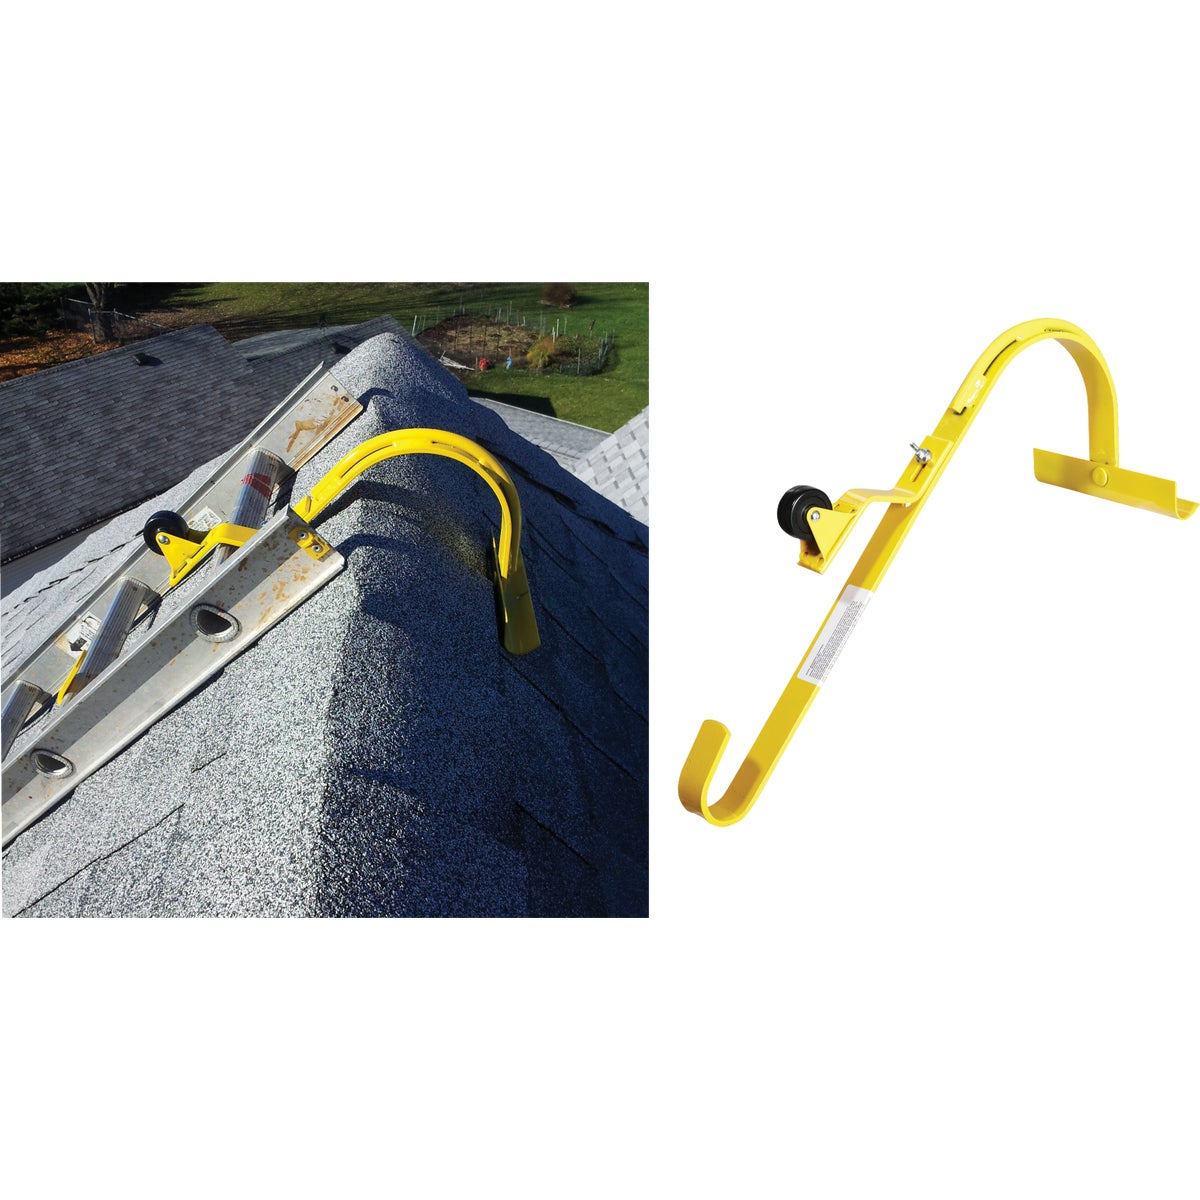 LADDER HOOK HDW/WHEELS - 11082 by Acro Building Systems